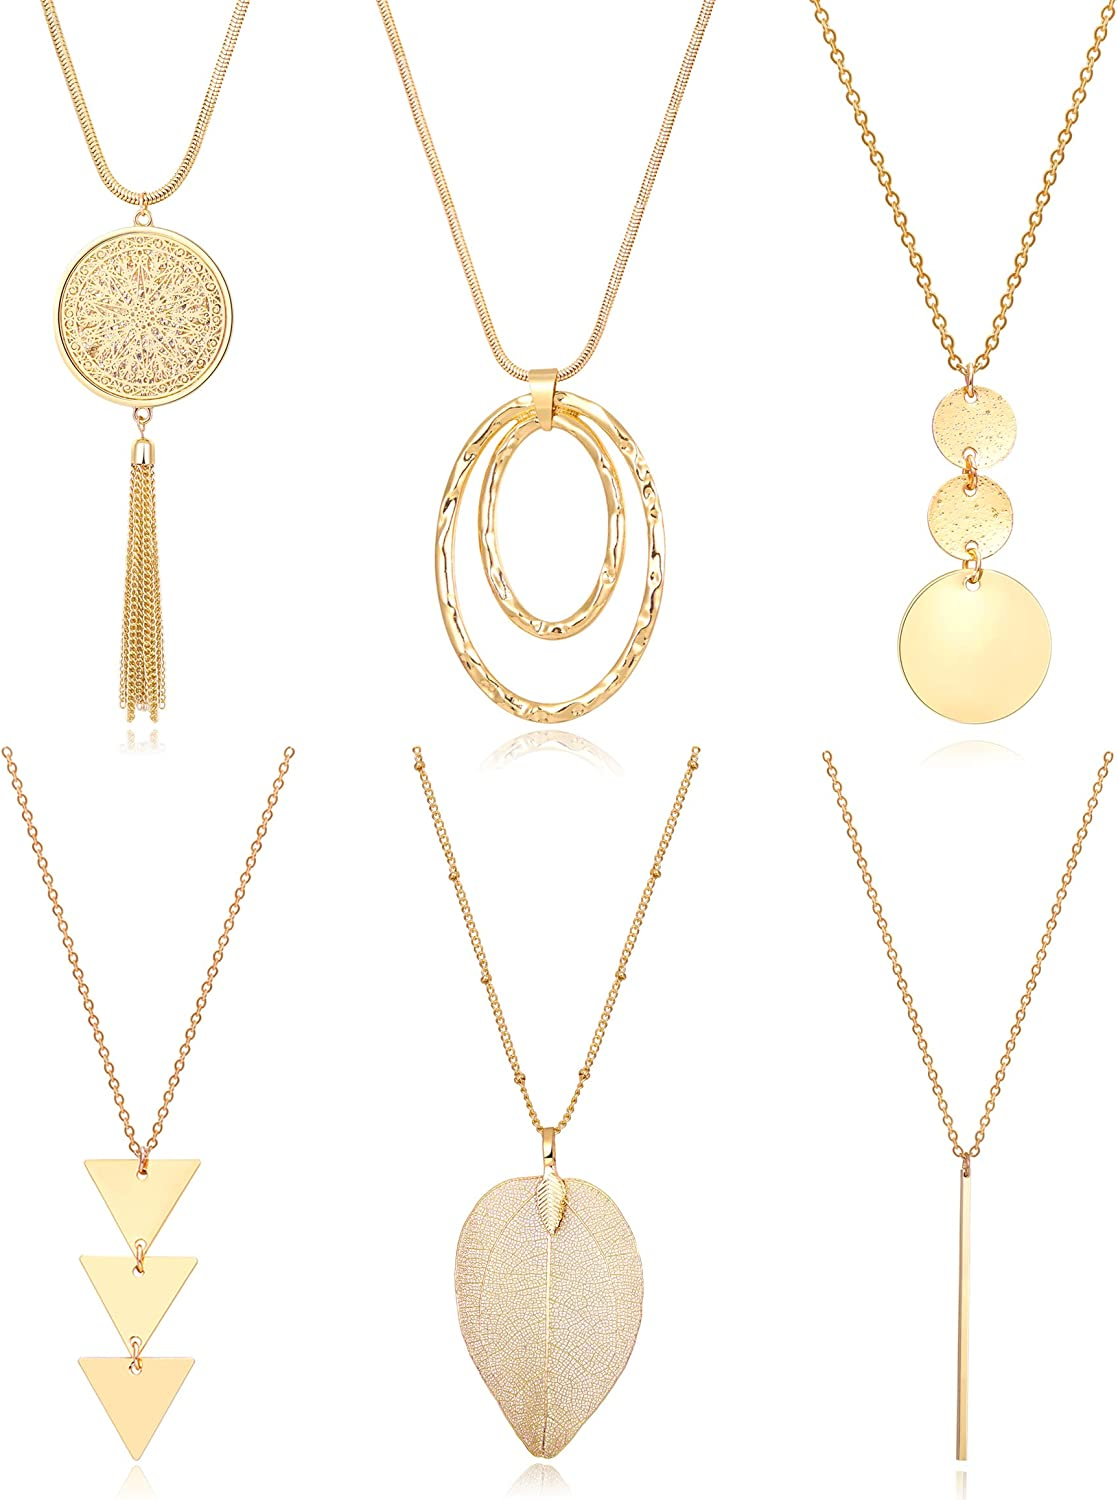 Fesciory 6 PCS Long Pendant Necklace for Women, Gold Bar Circle Leaf Triangle Tassel Y Necklace Set for Girls